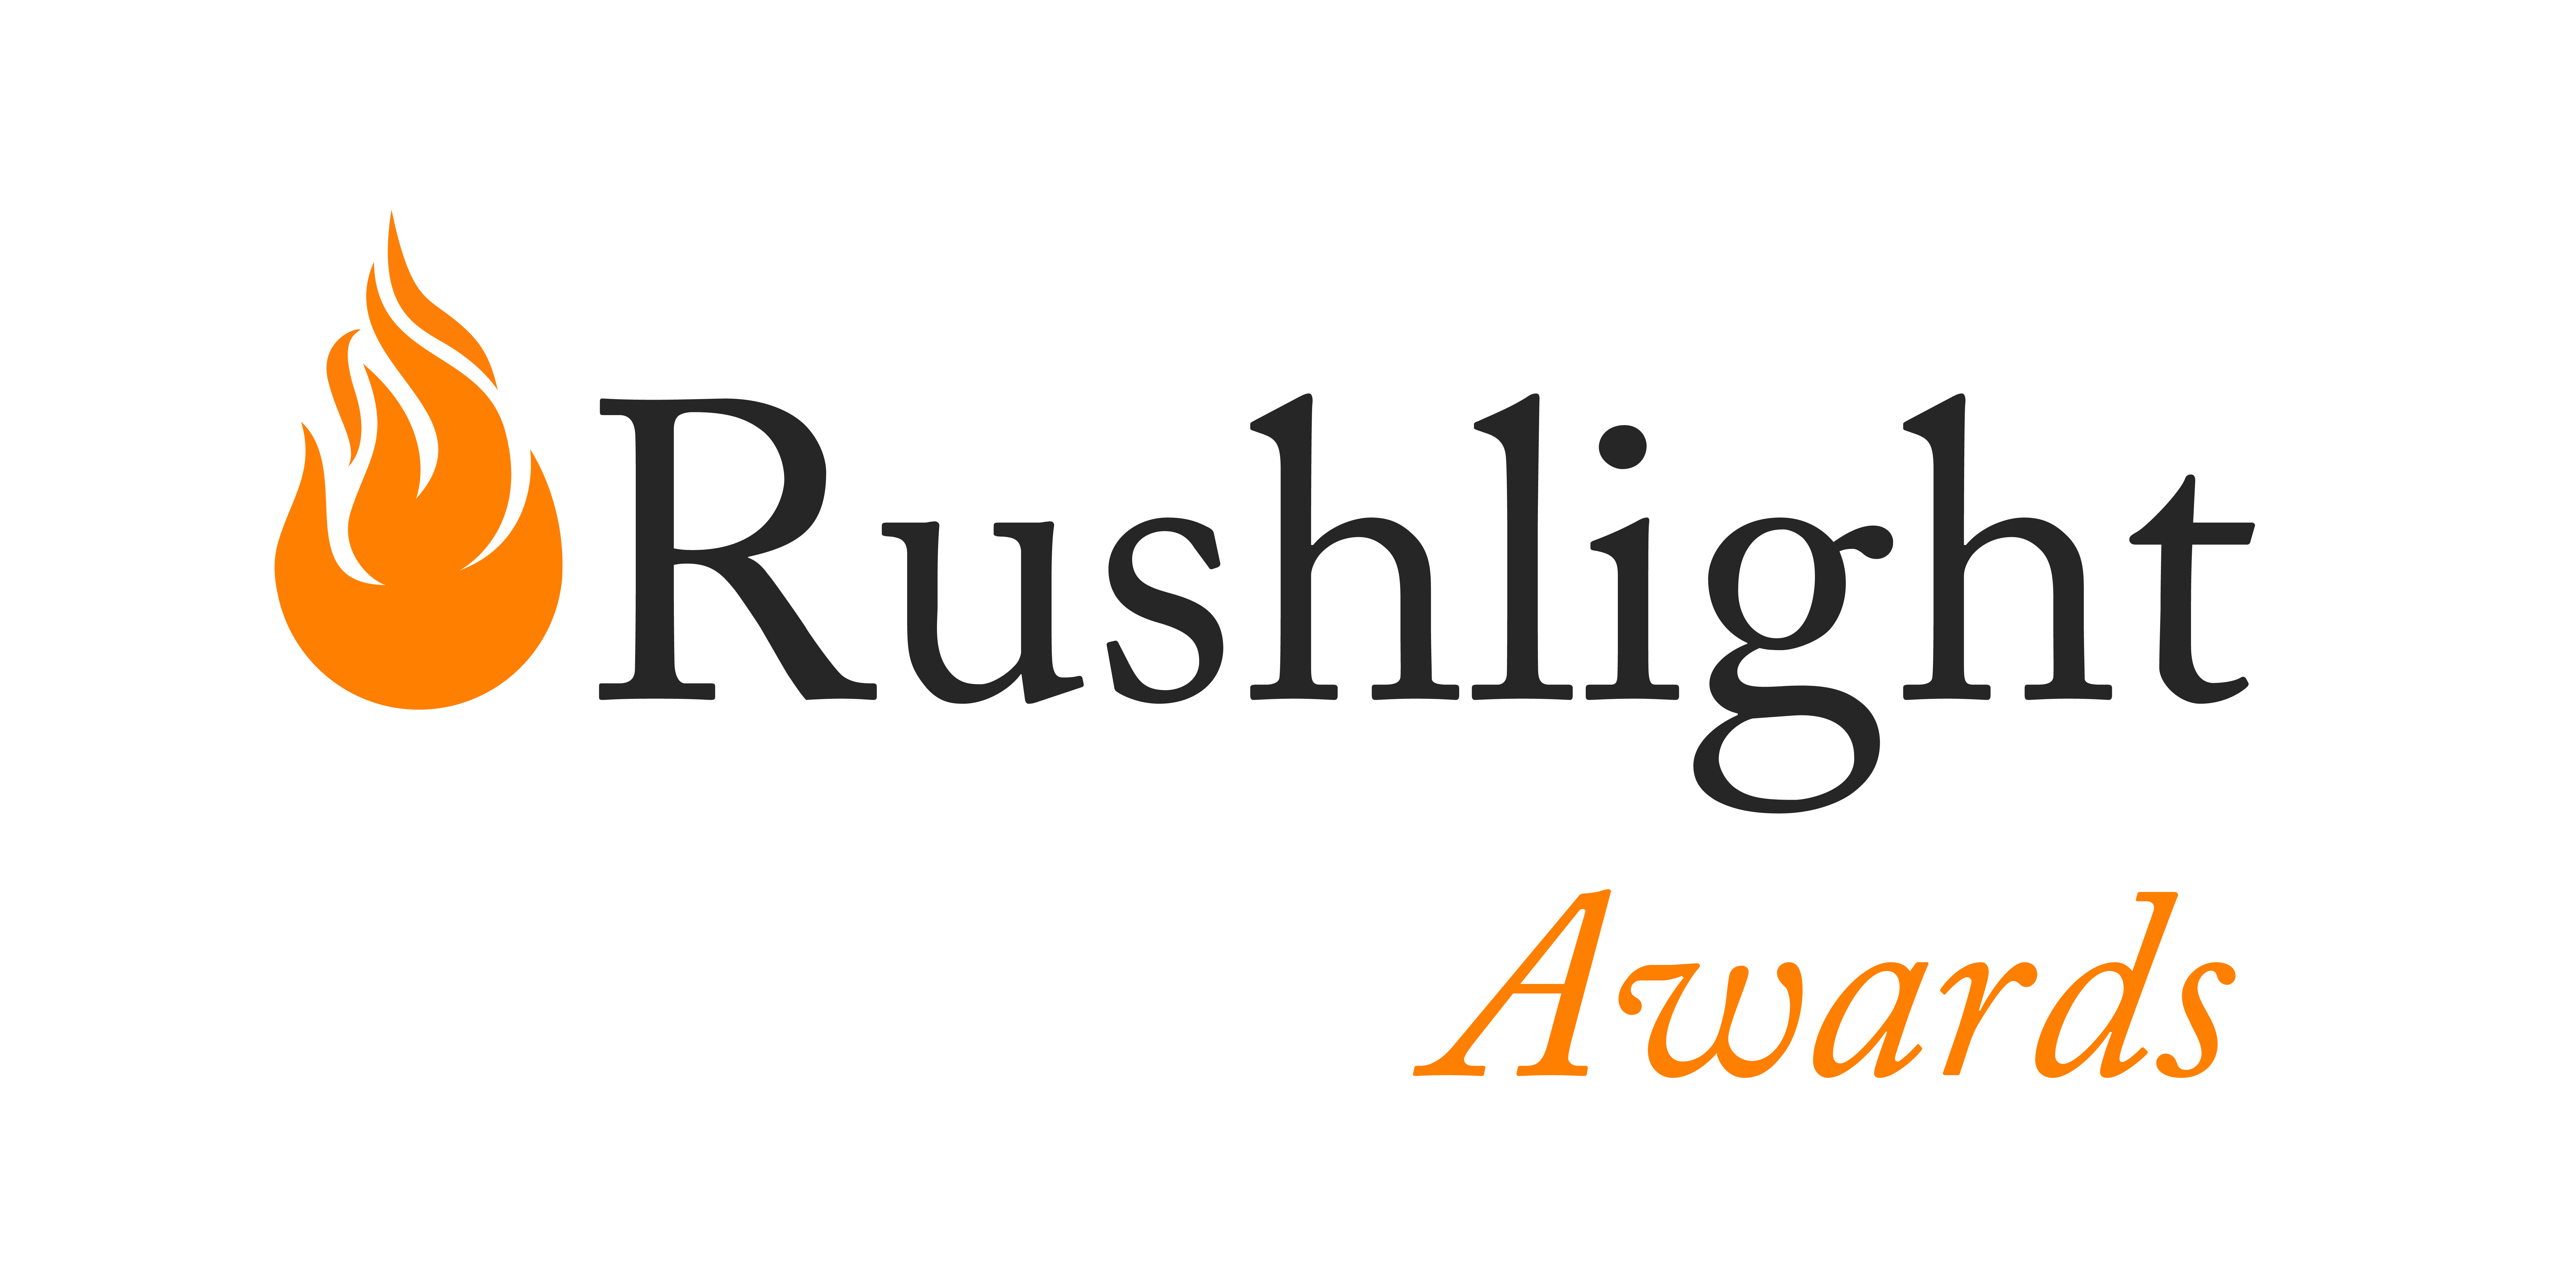 Rushlight Awards 2020-21 - Open for entries - Closing date 30 November 2020